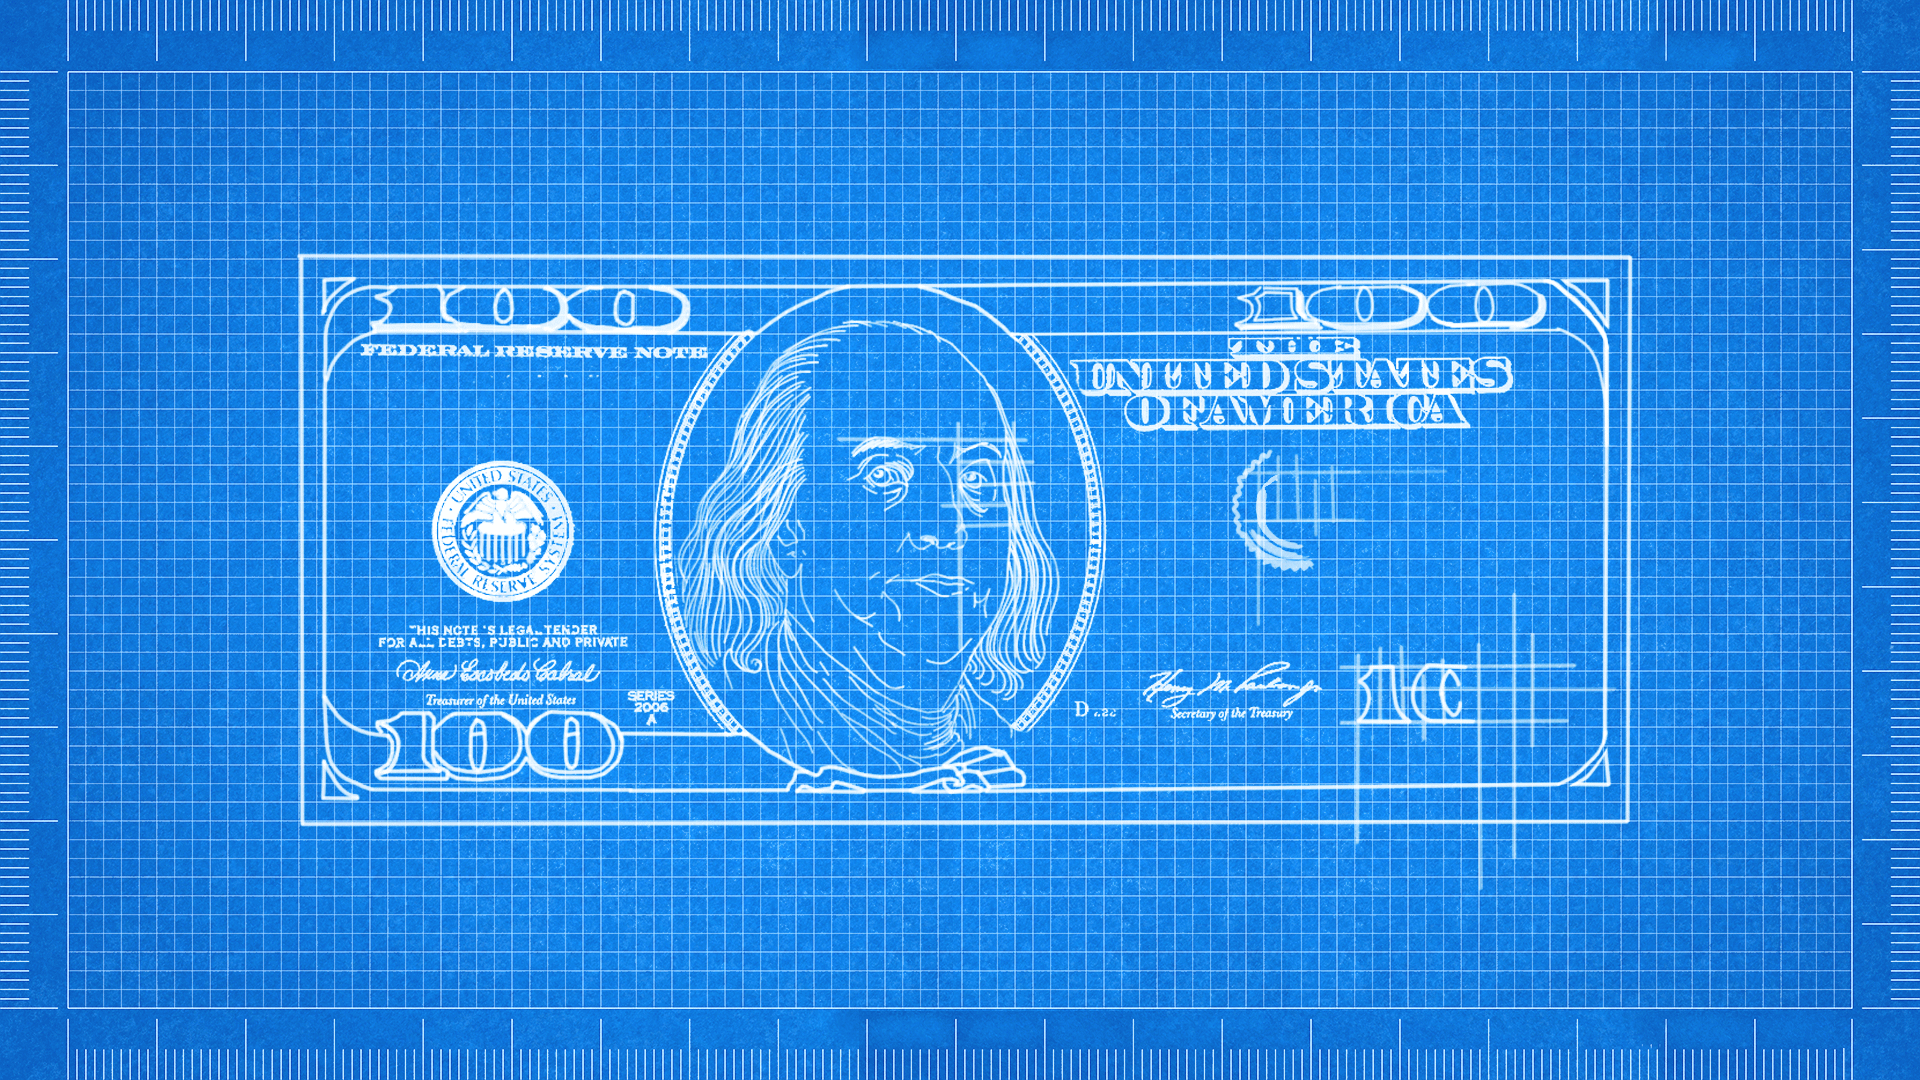 Illustration of a blueprint drawing of an uncompleted hundred dollar bill